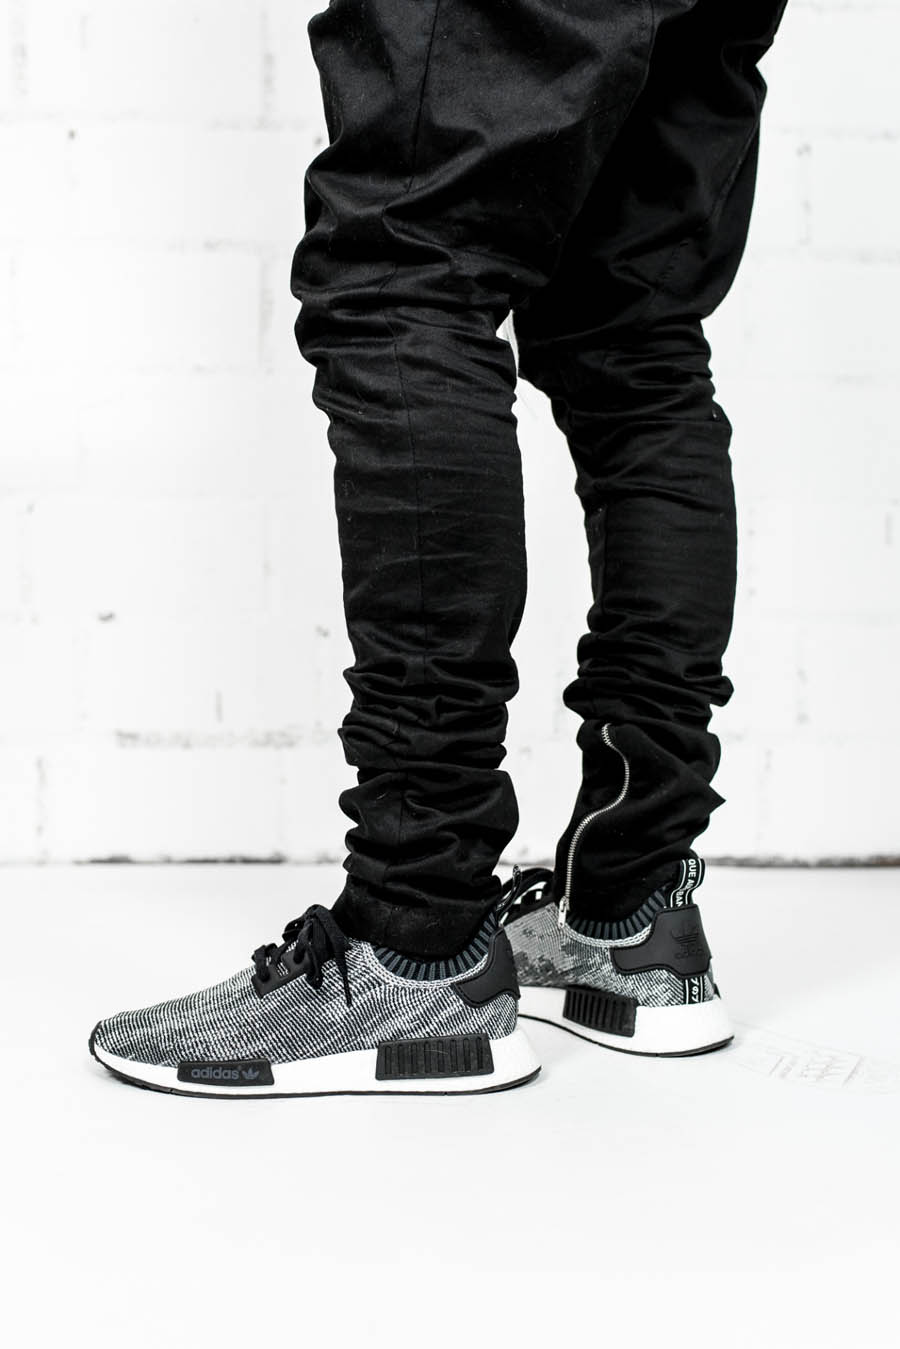 Slim Fit Cotton Pants × NMD Runner #streetwear